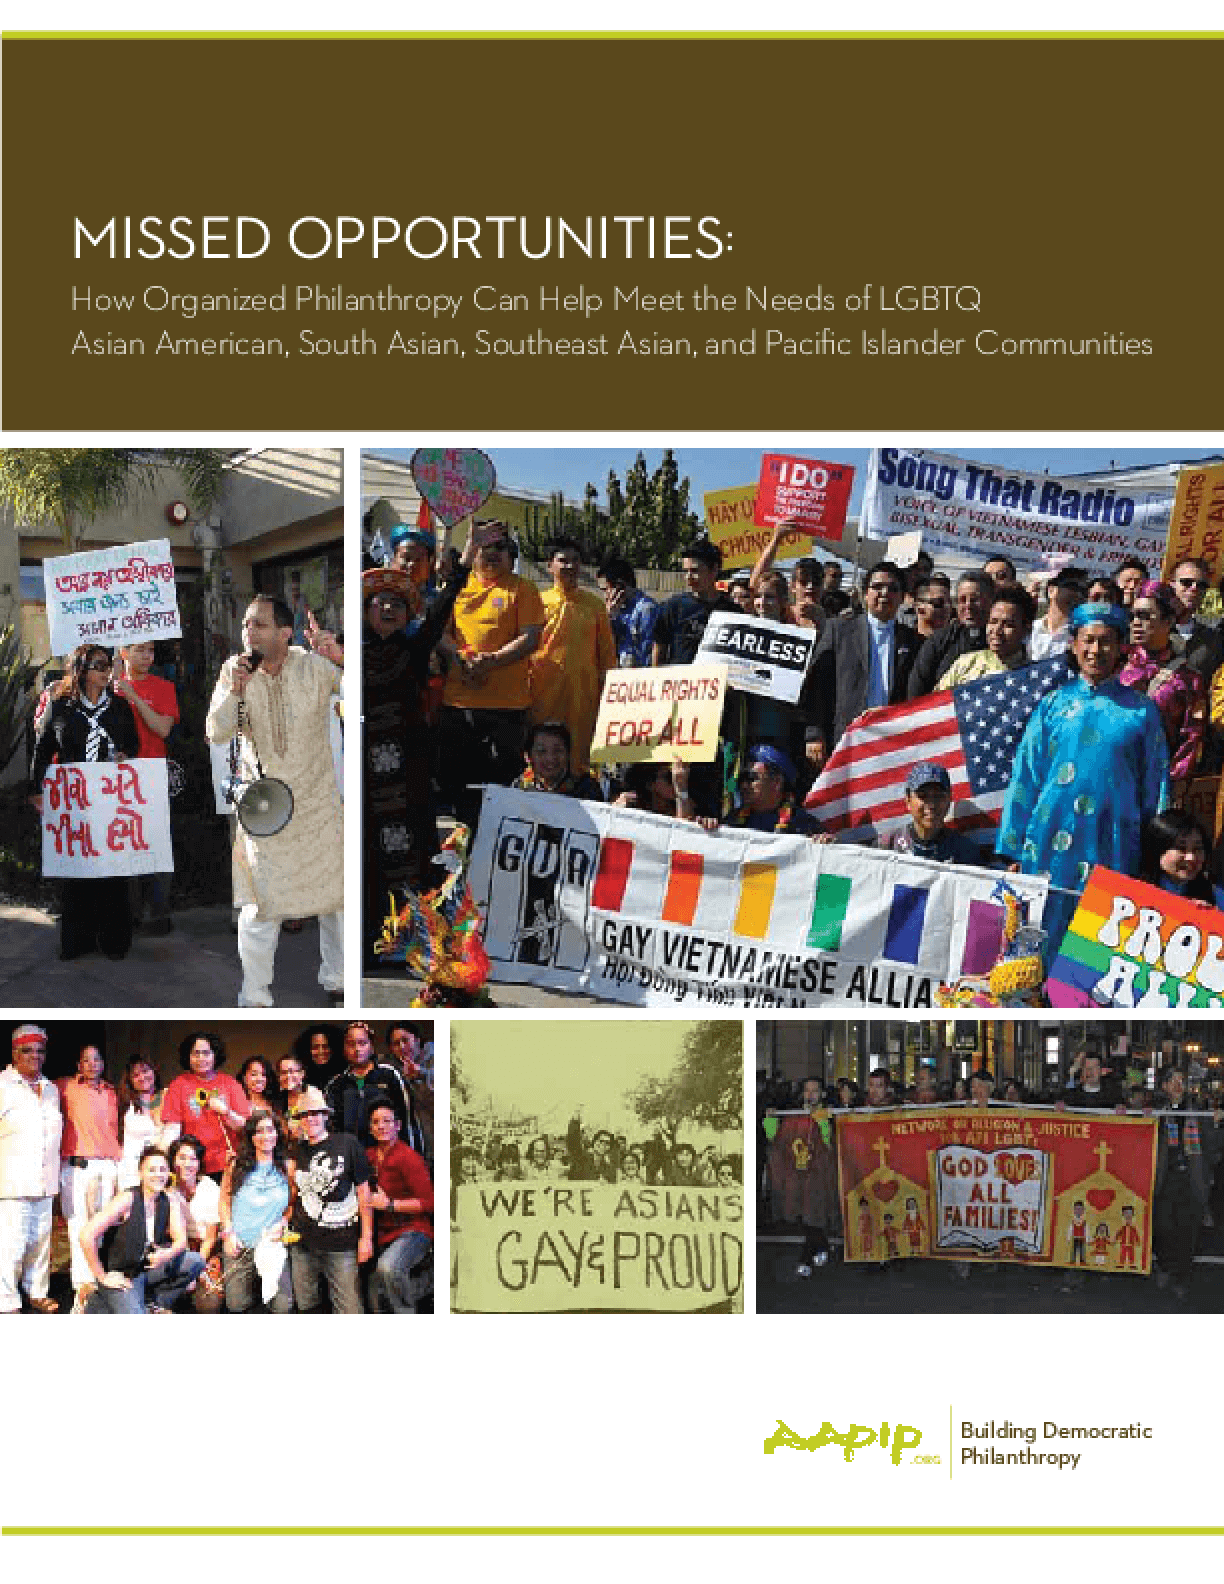 Missed Opportunities: How Organized Philanthropy Can Help Meet the Needs of LGBTQ Asian American, South Asian, Southeast Asian, and Pacific Islander Communities